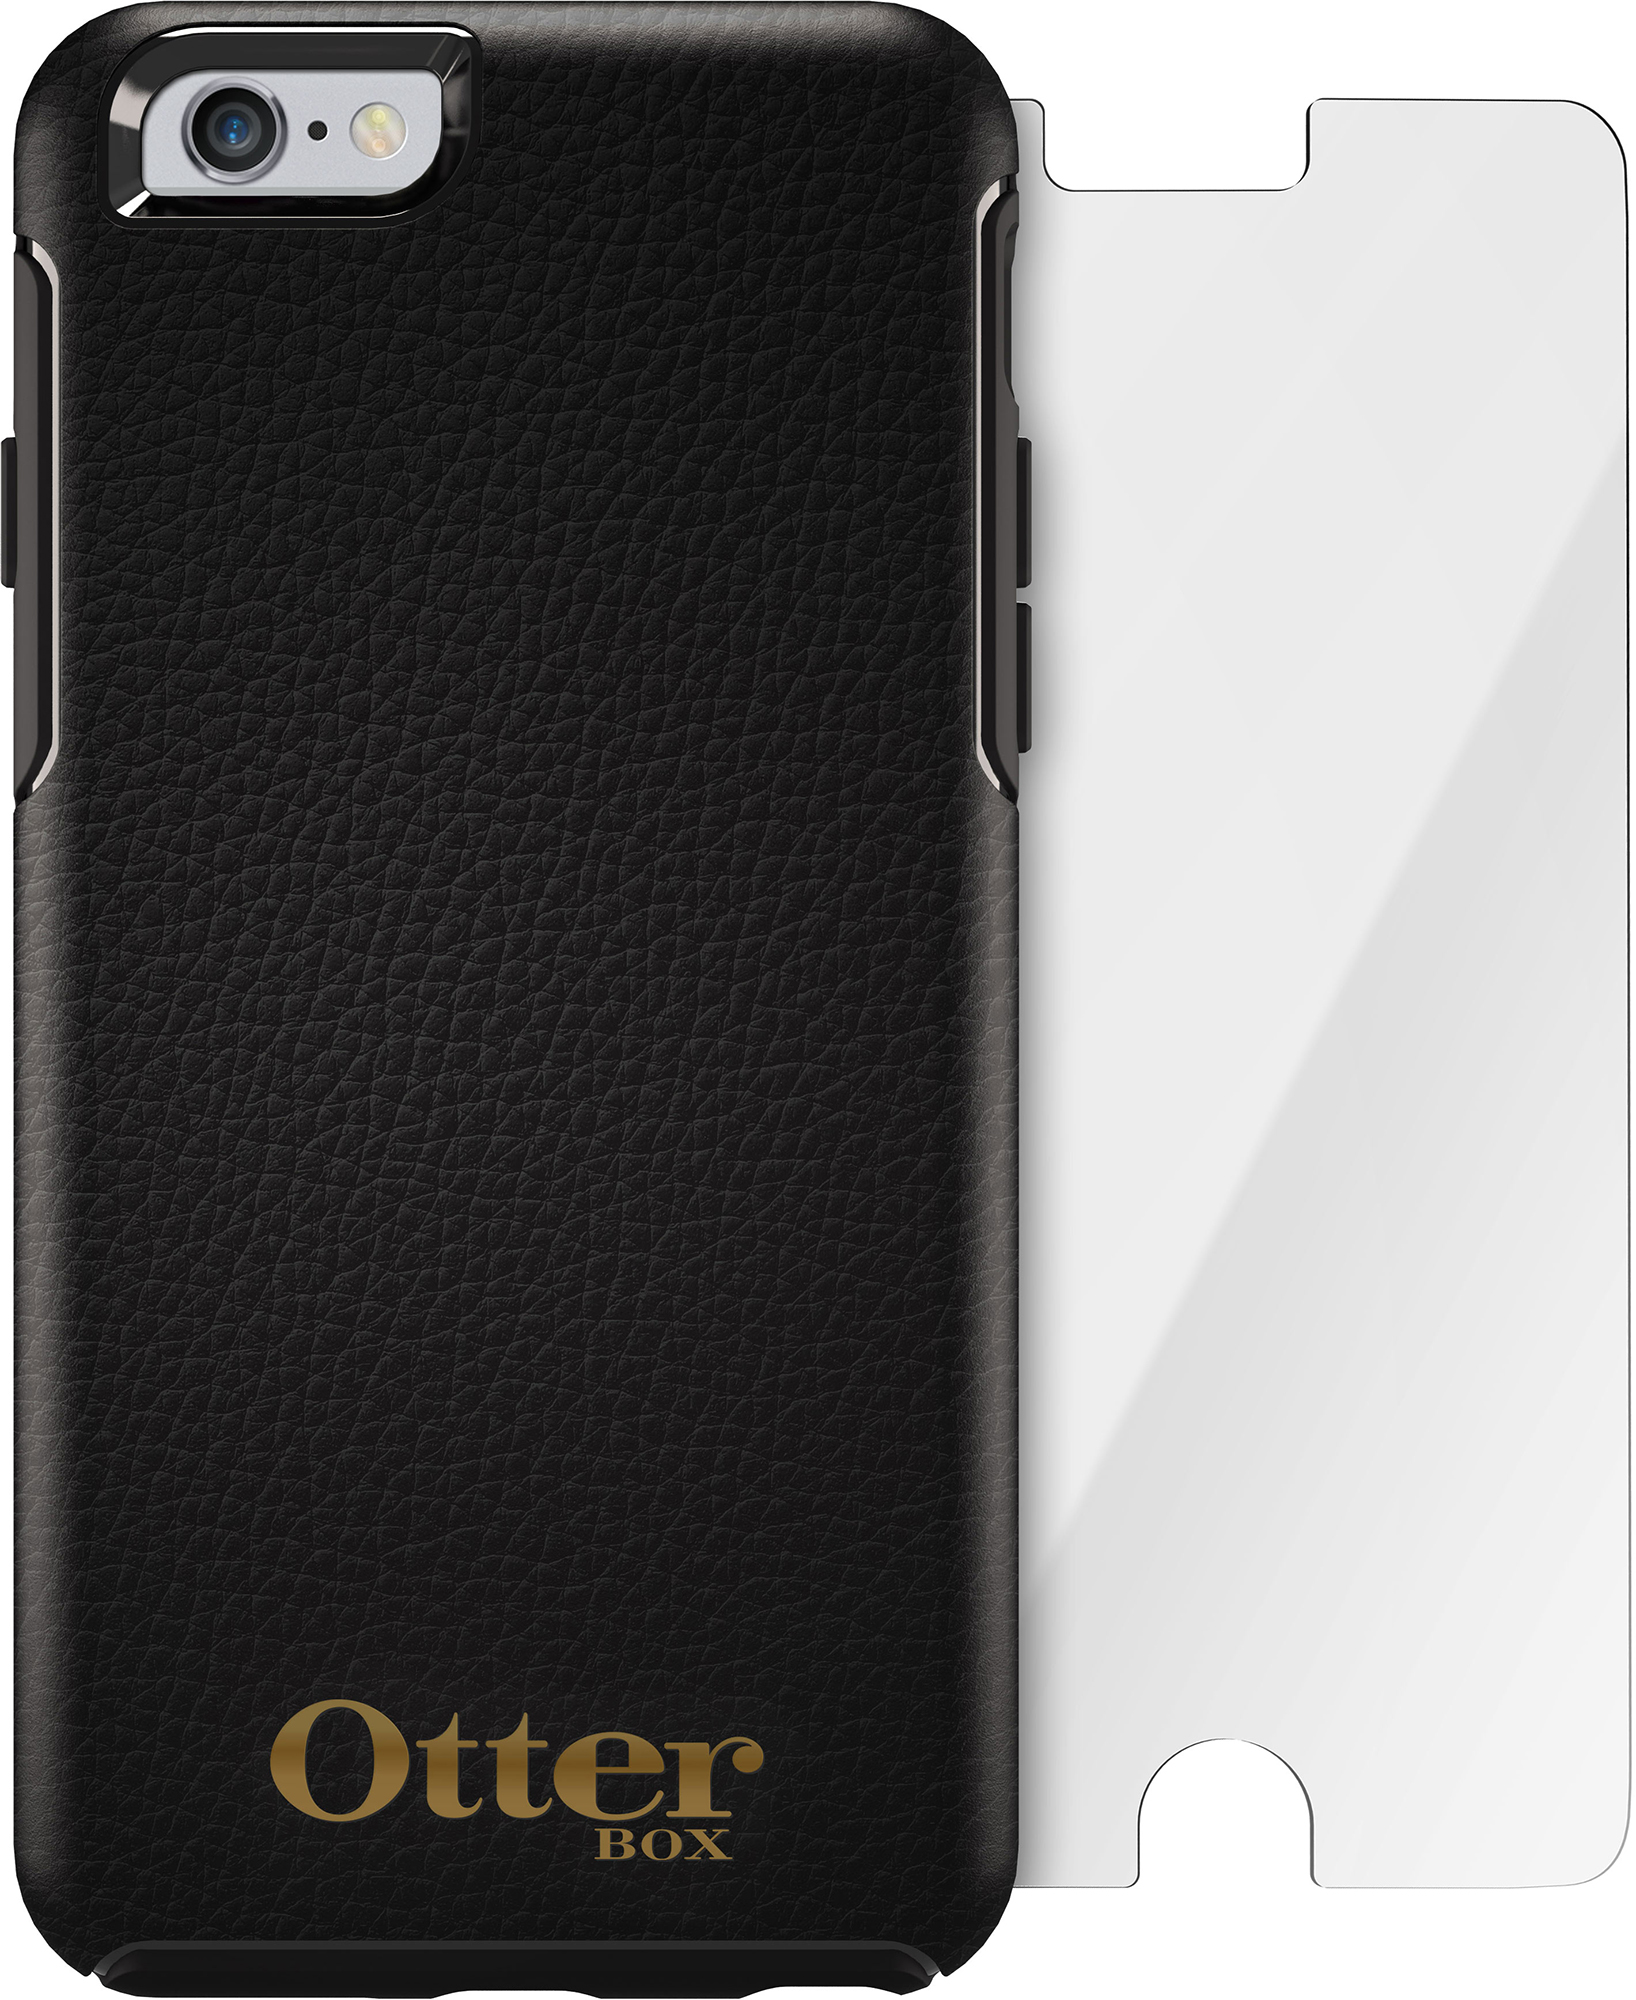 OtterBox iPhone 6s case and Glass Screen Protector bundle